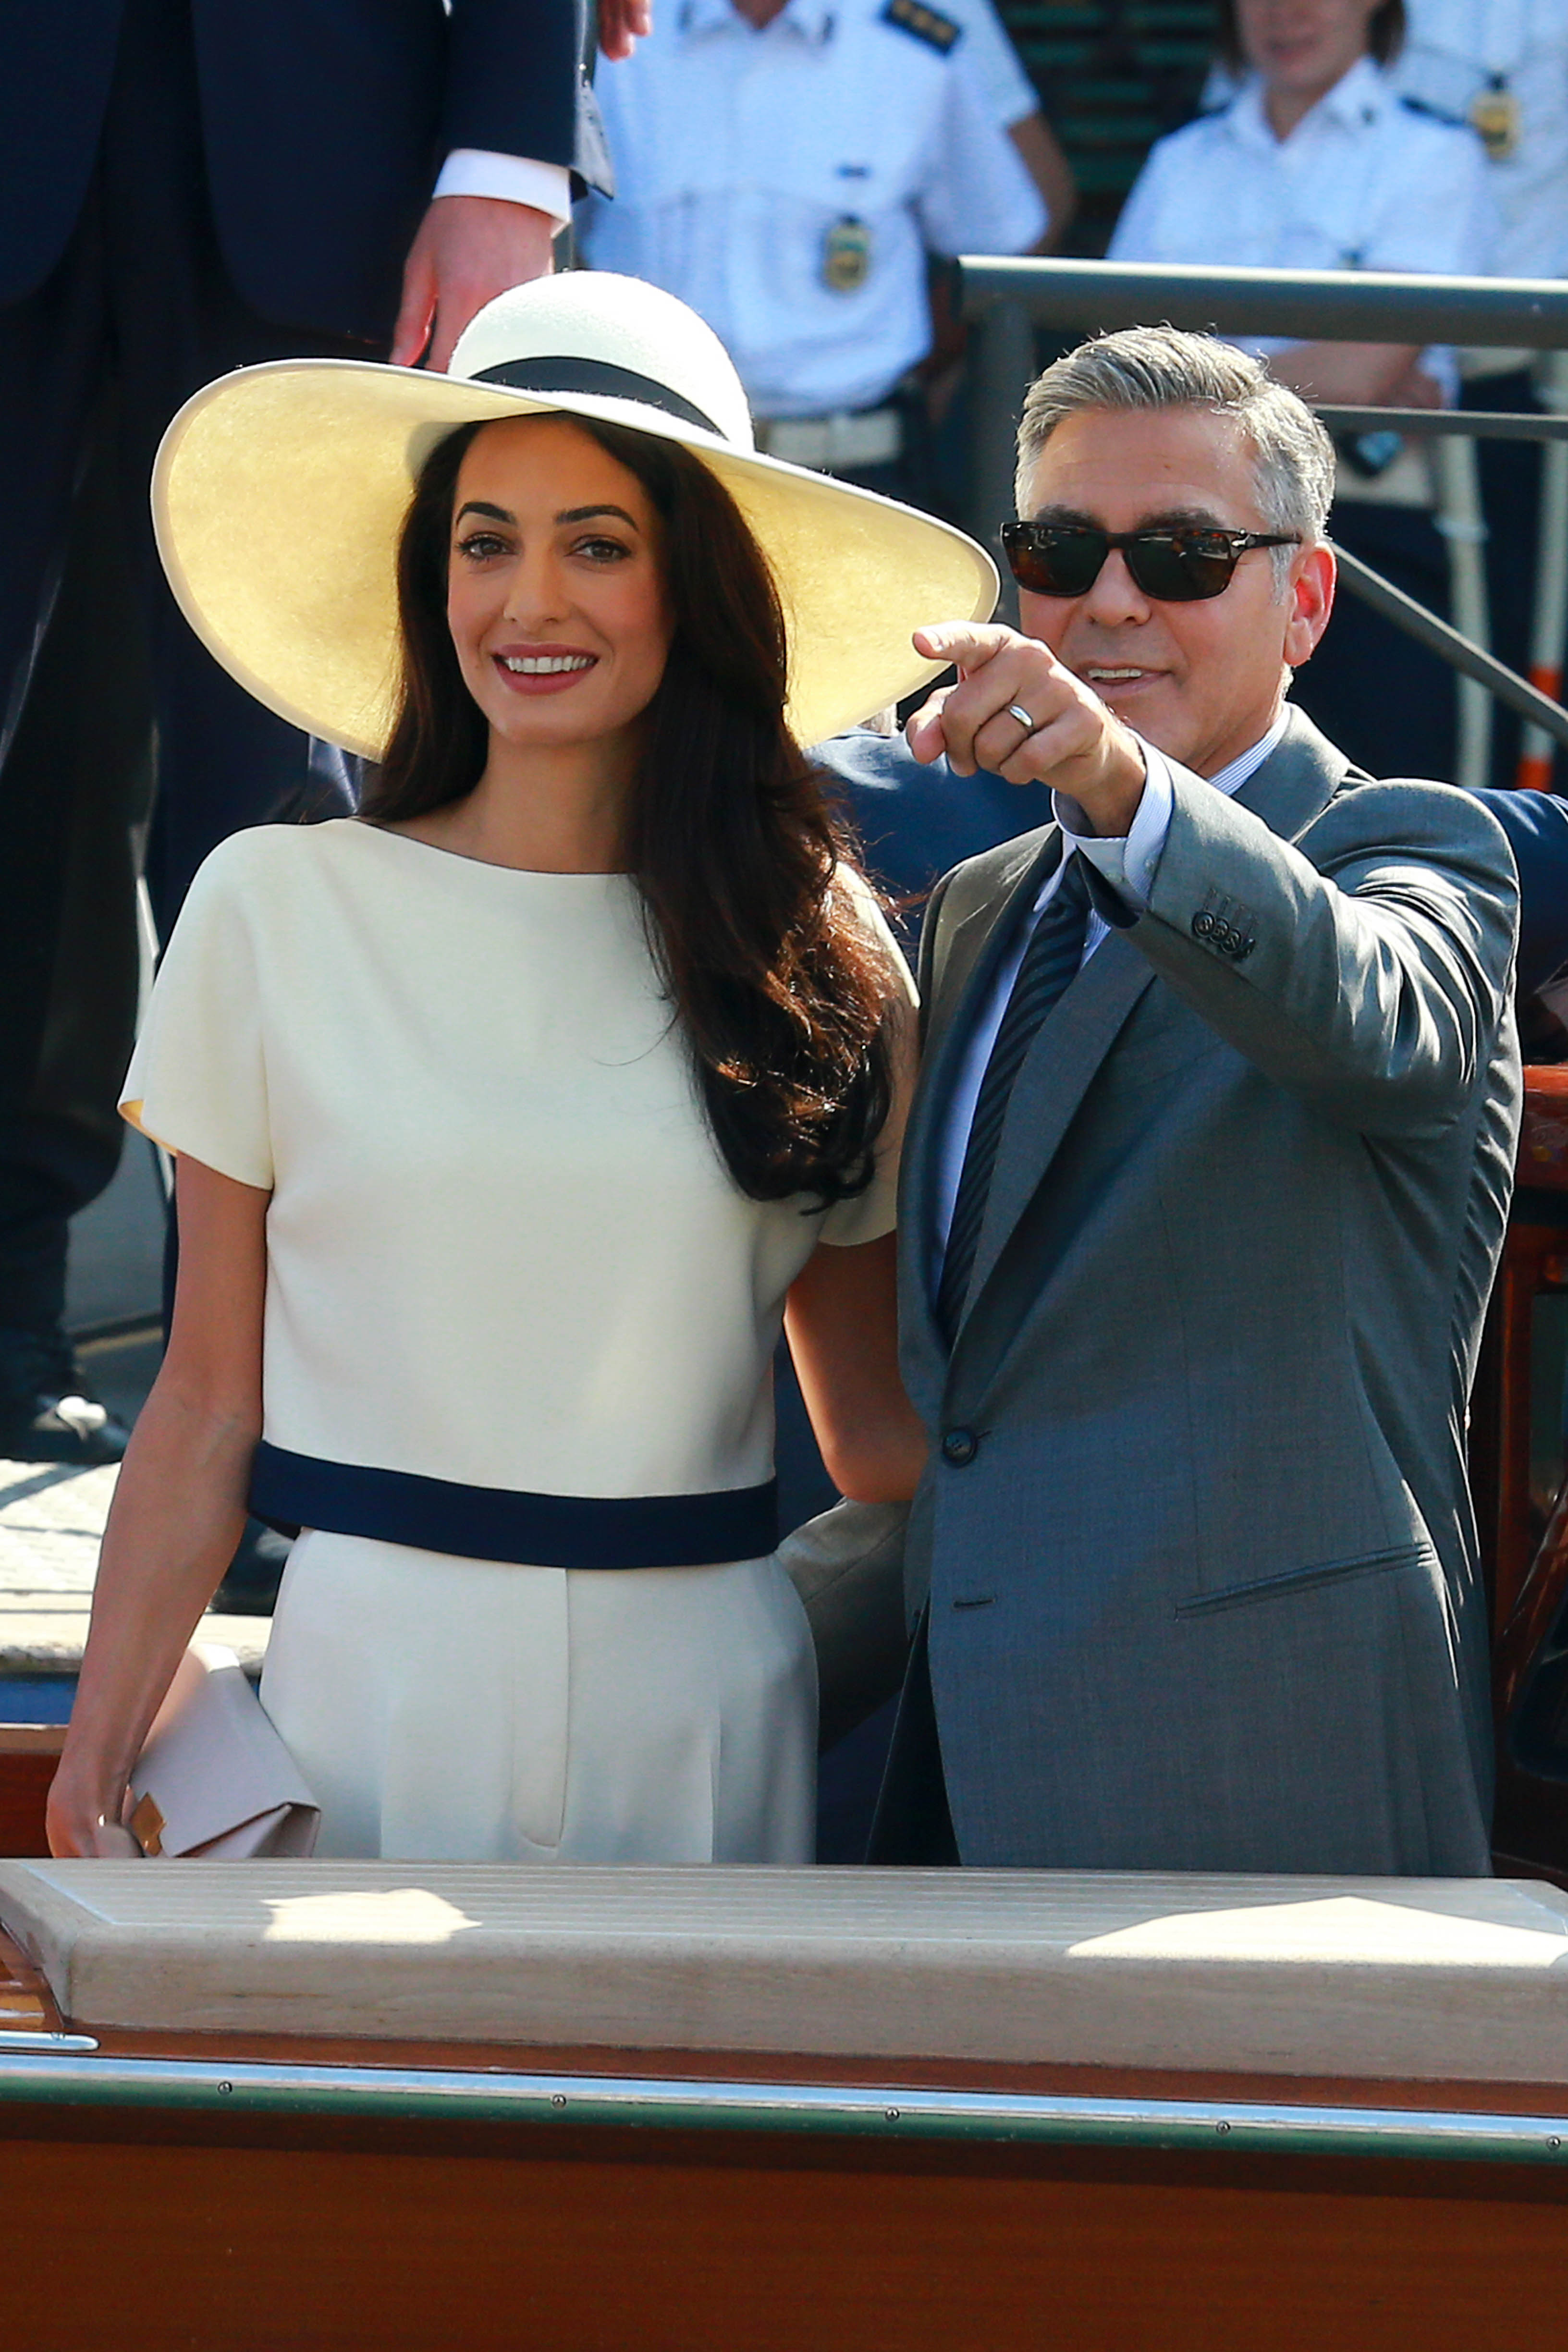 George Clooney and Amal Alamuddin sighting during their civil wedding at Canal Grande on September 29, 2014 in Venice, Italy.  (Photo by Robino Salvatore/GC Images)